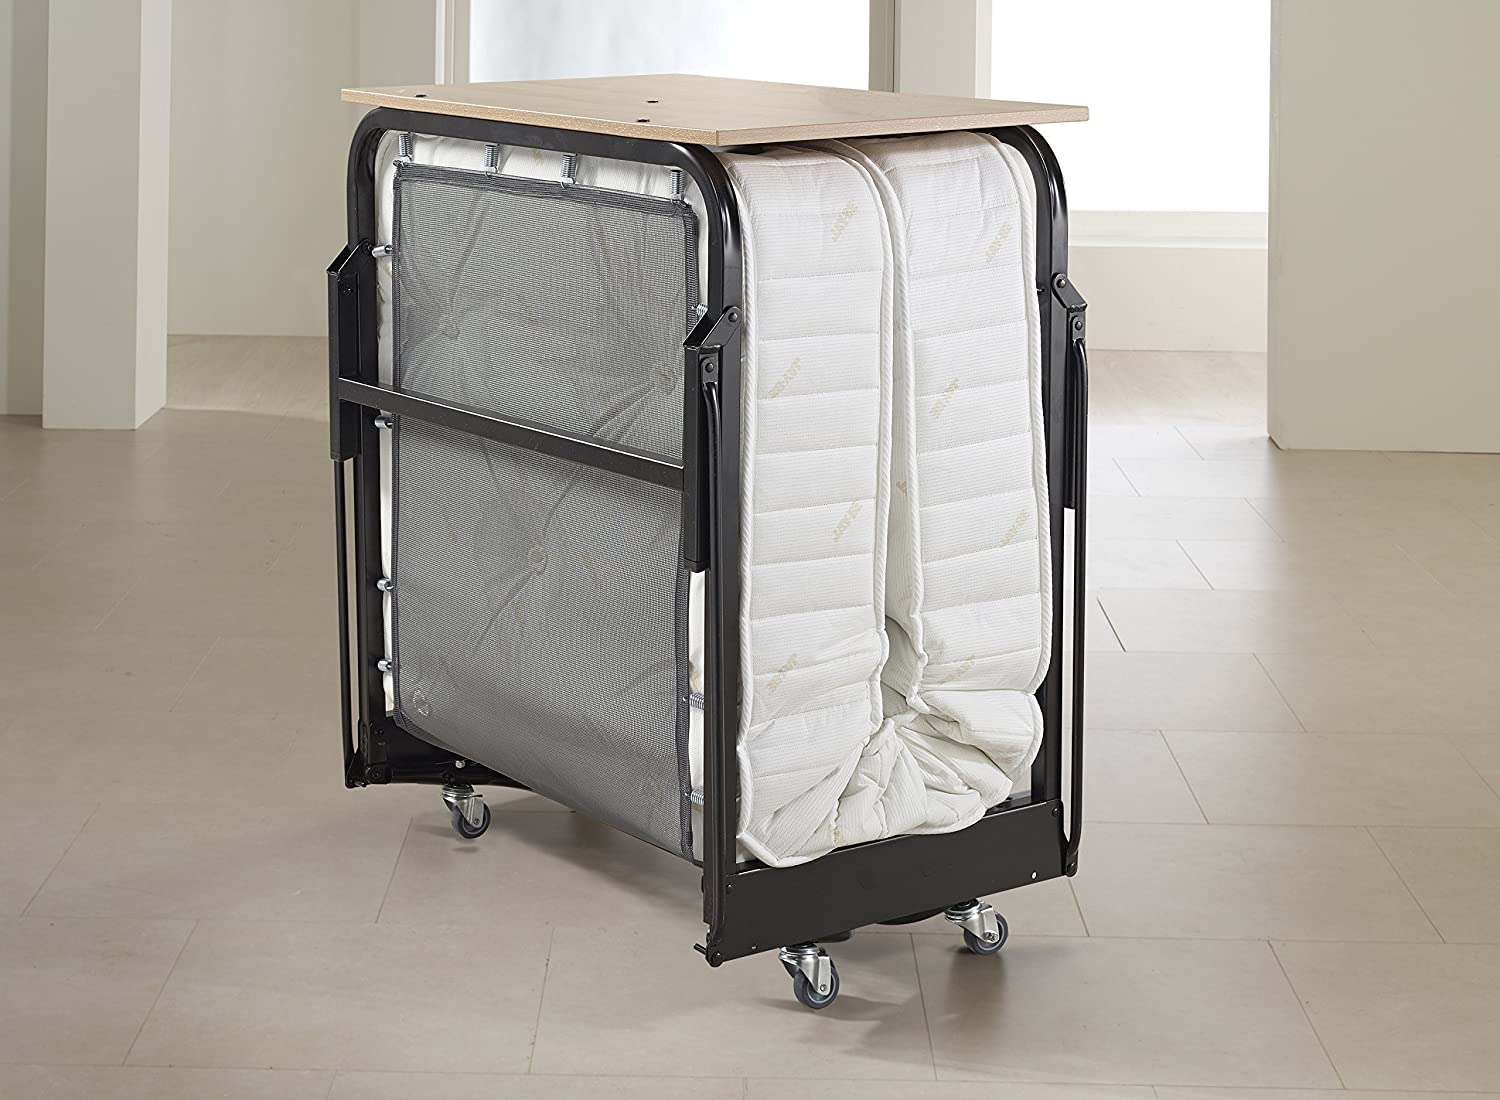 Extra Large Folding Beds For Heavy People   For Big ...